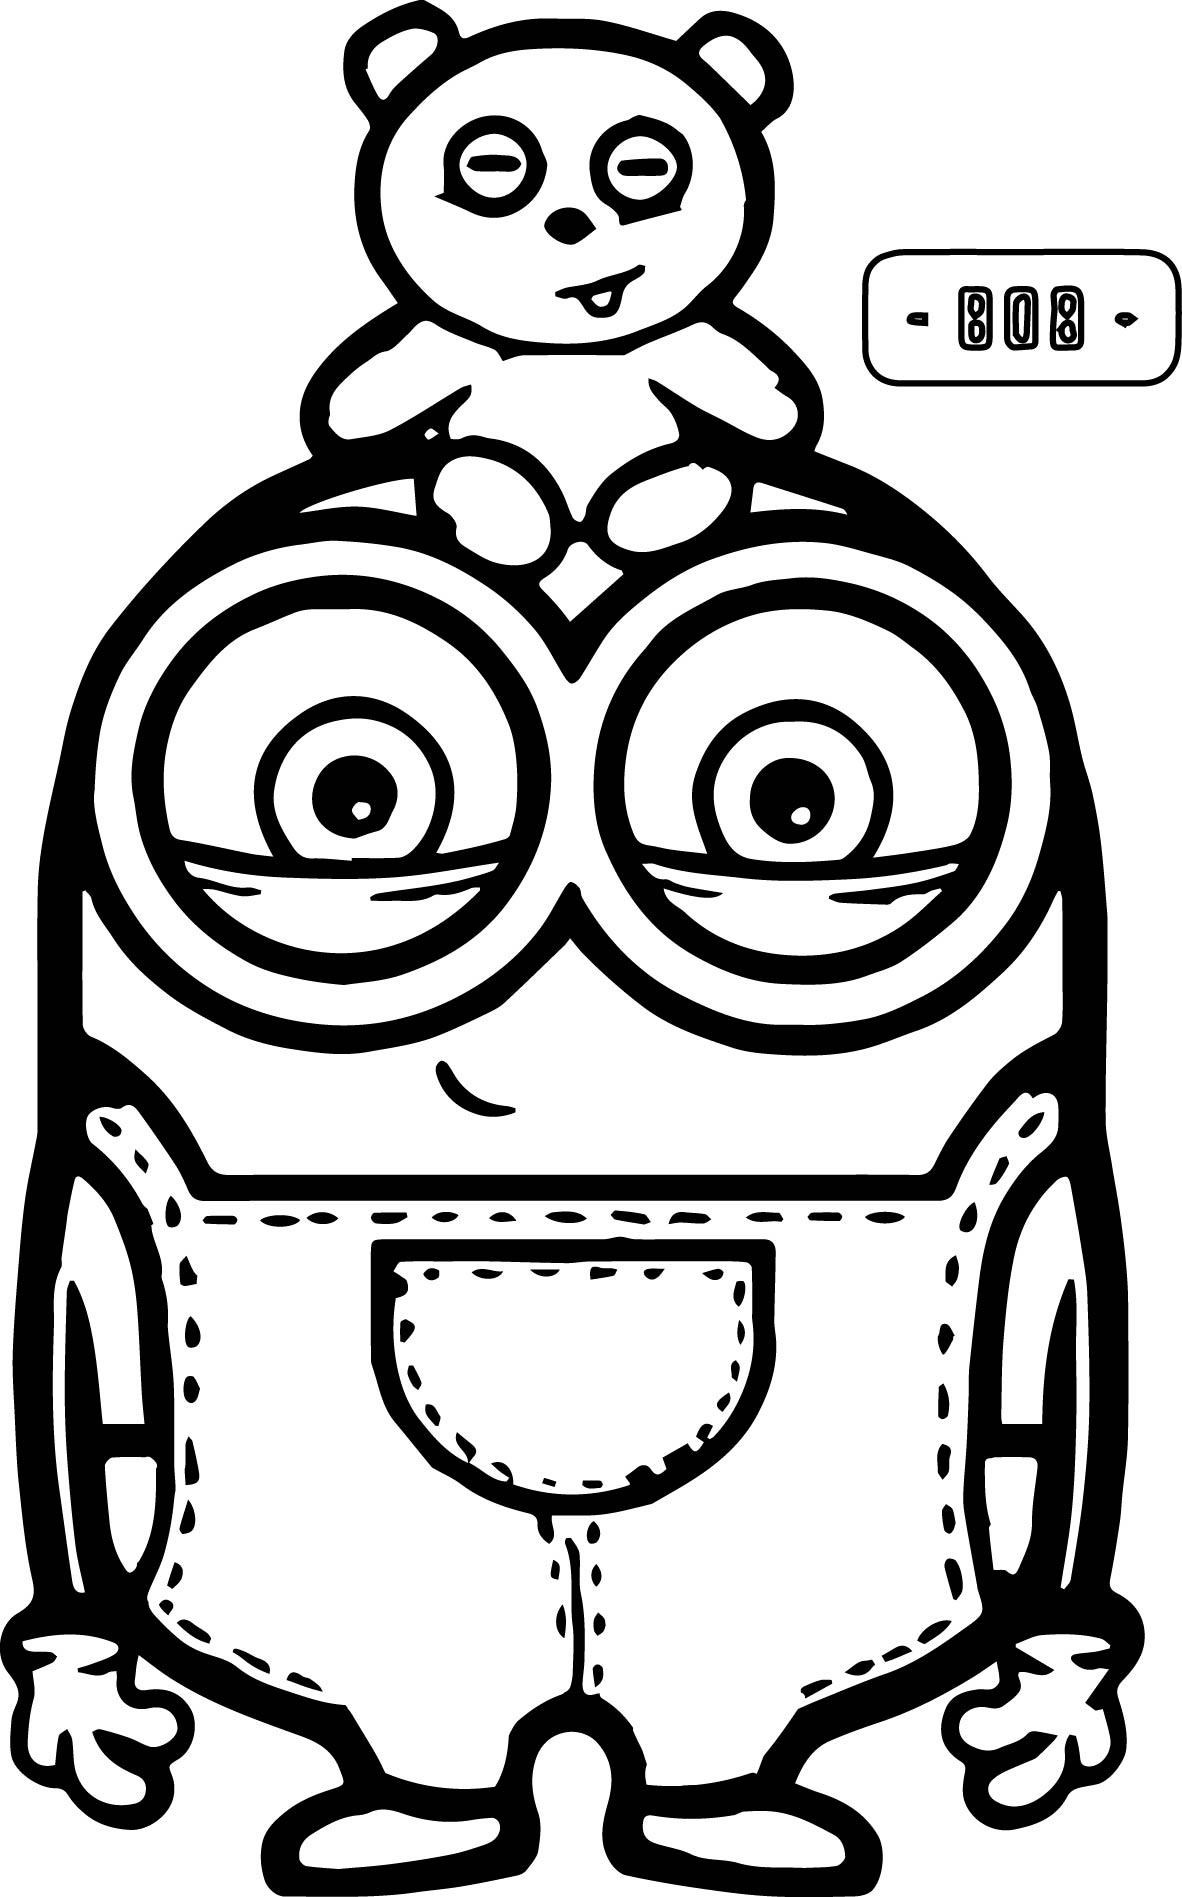 Cute-Bob-And-Bear-Minions-Coloring-Page